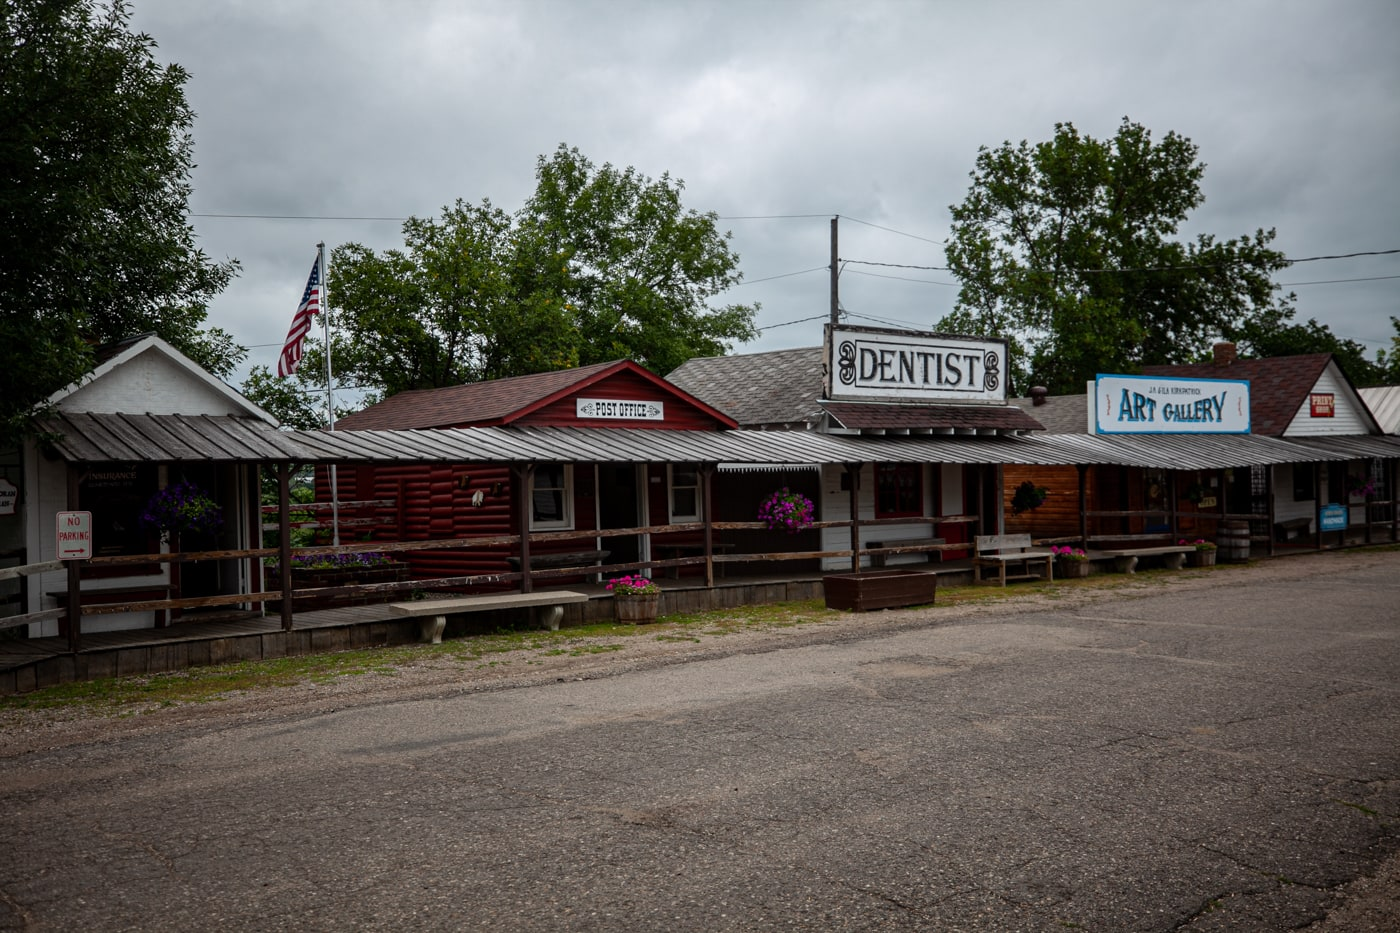 Frontier Village in Jamestown, North Dakota | Roadside Attractions in North Dakota